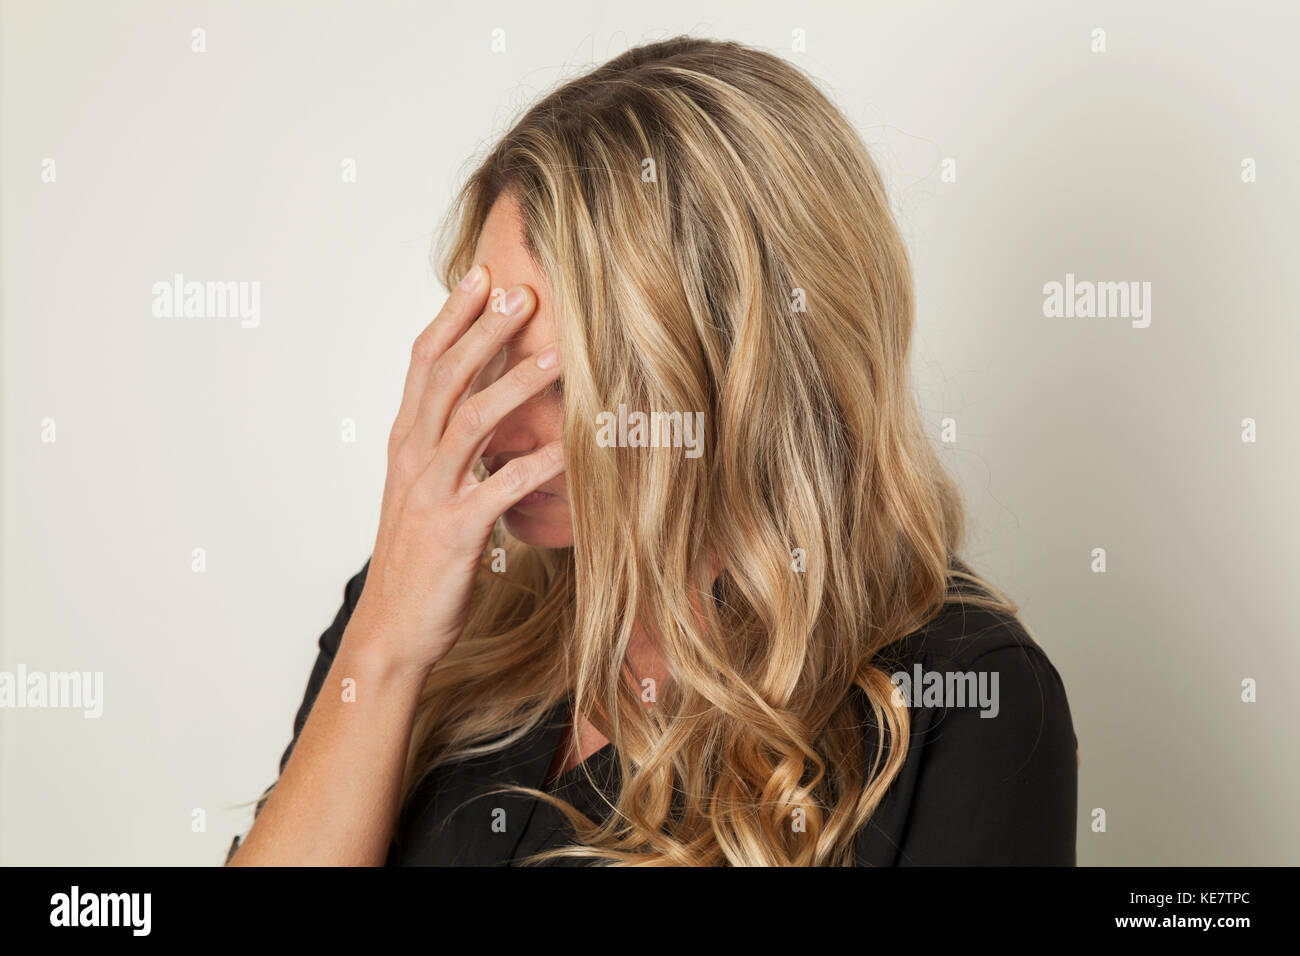 Woman With Blond Hair Hiding Her Face With Her Hand; Connecticut, United States Of America - Stock Image